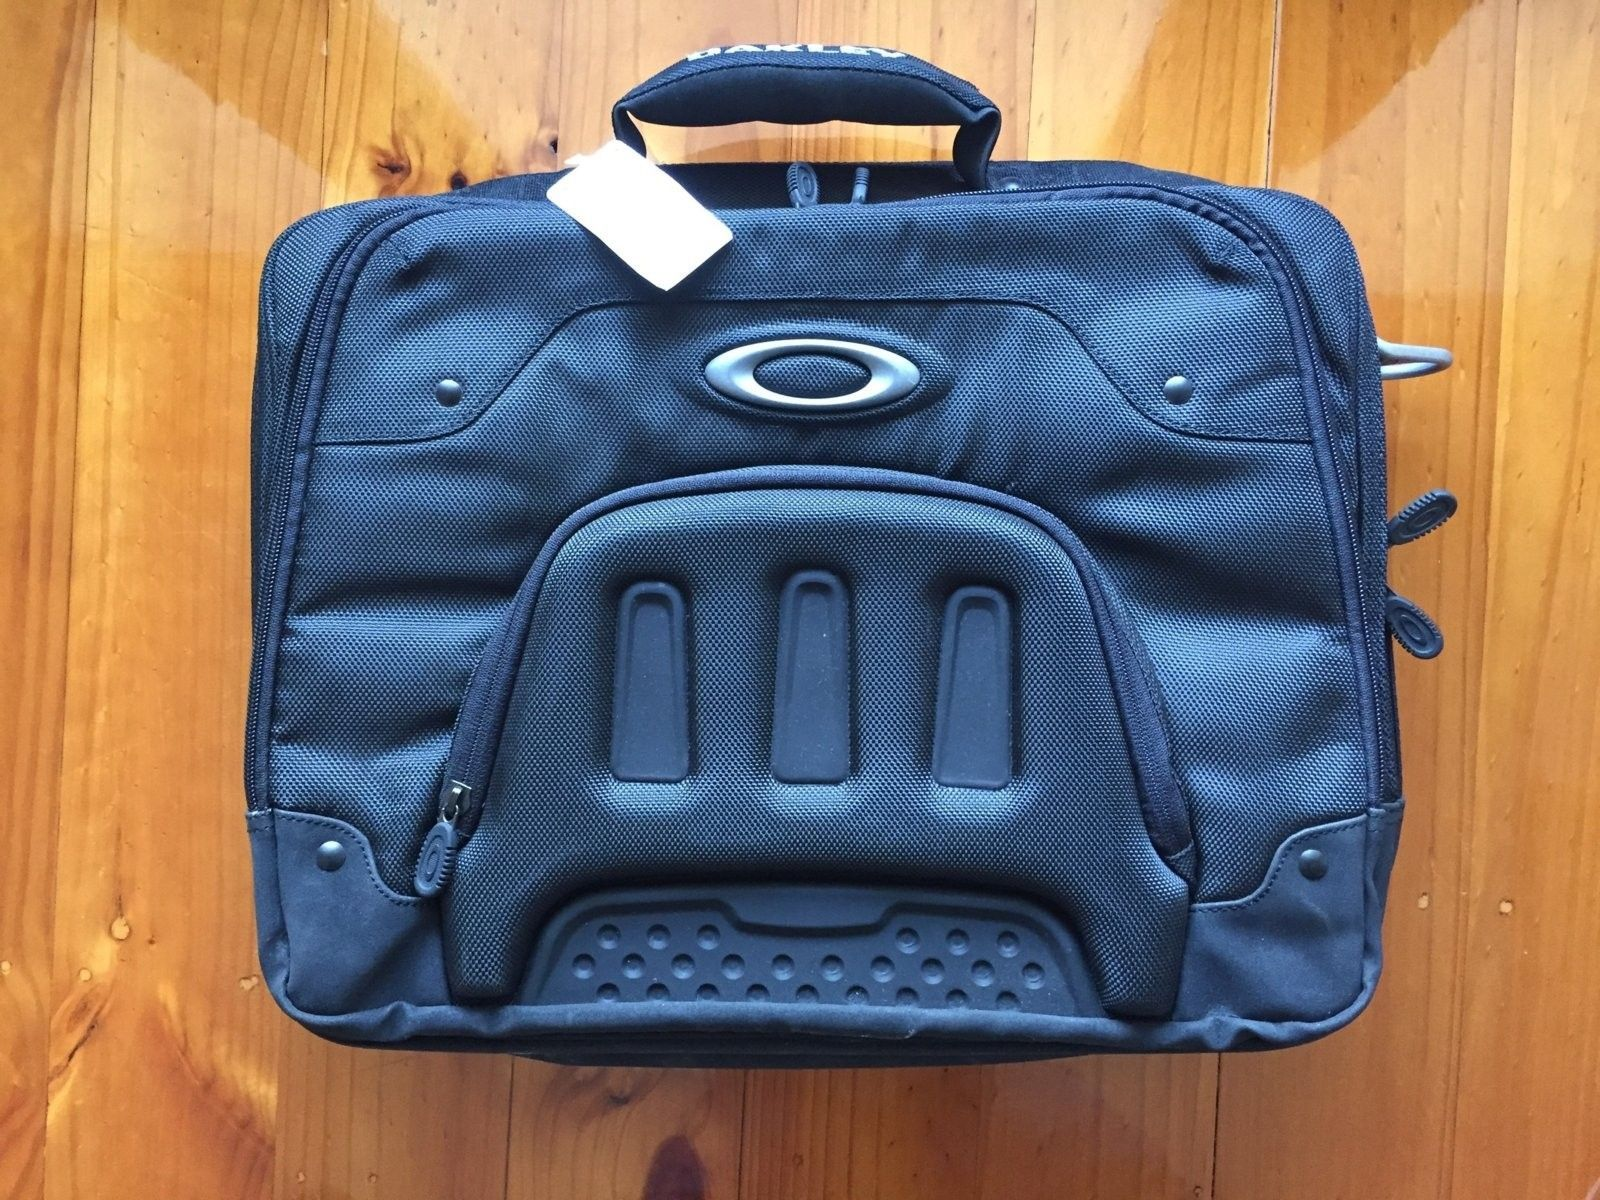 Which Laptop Bag is this? - IMG_0392.jpg